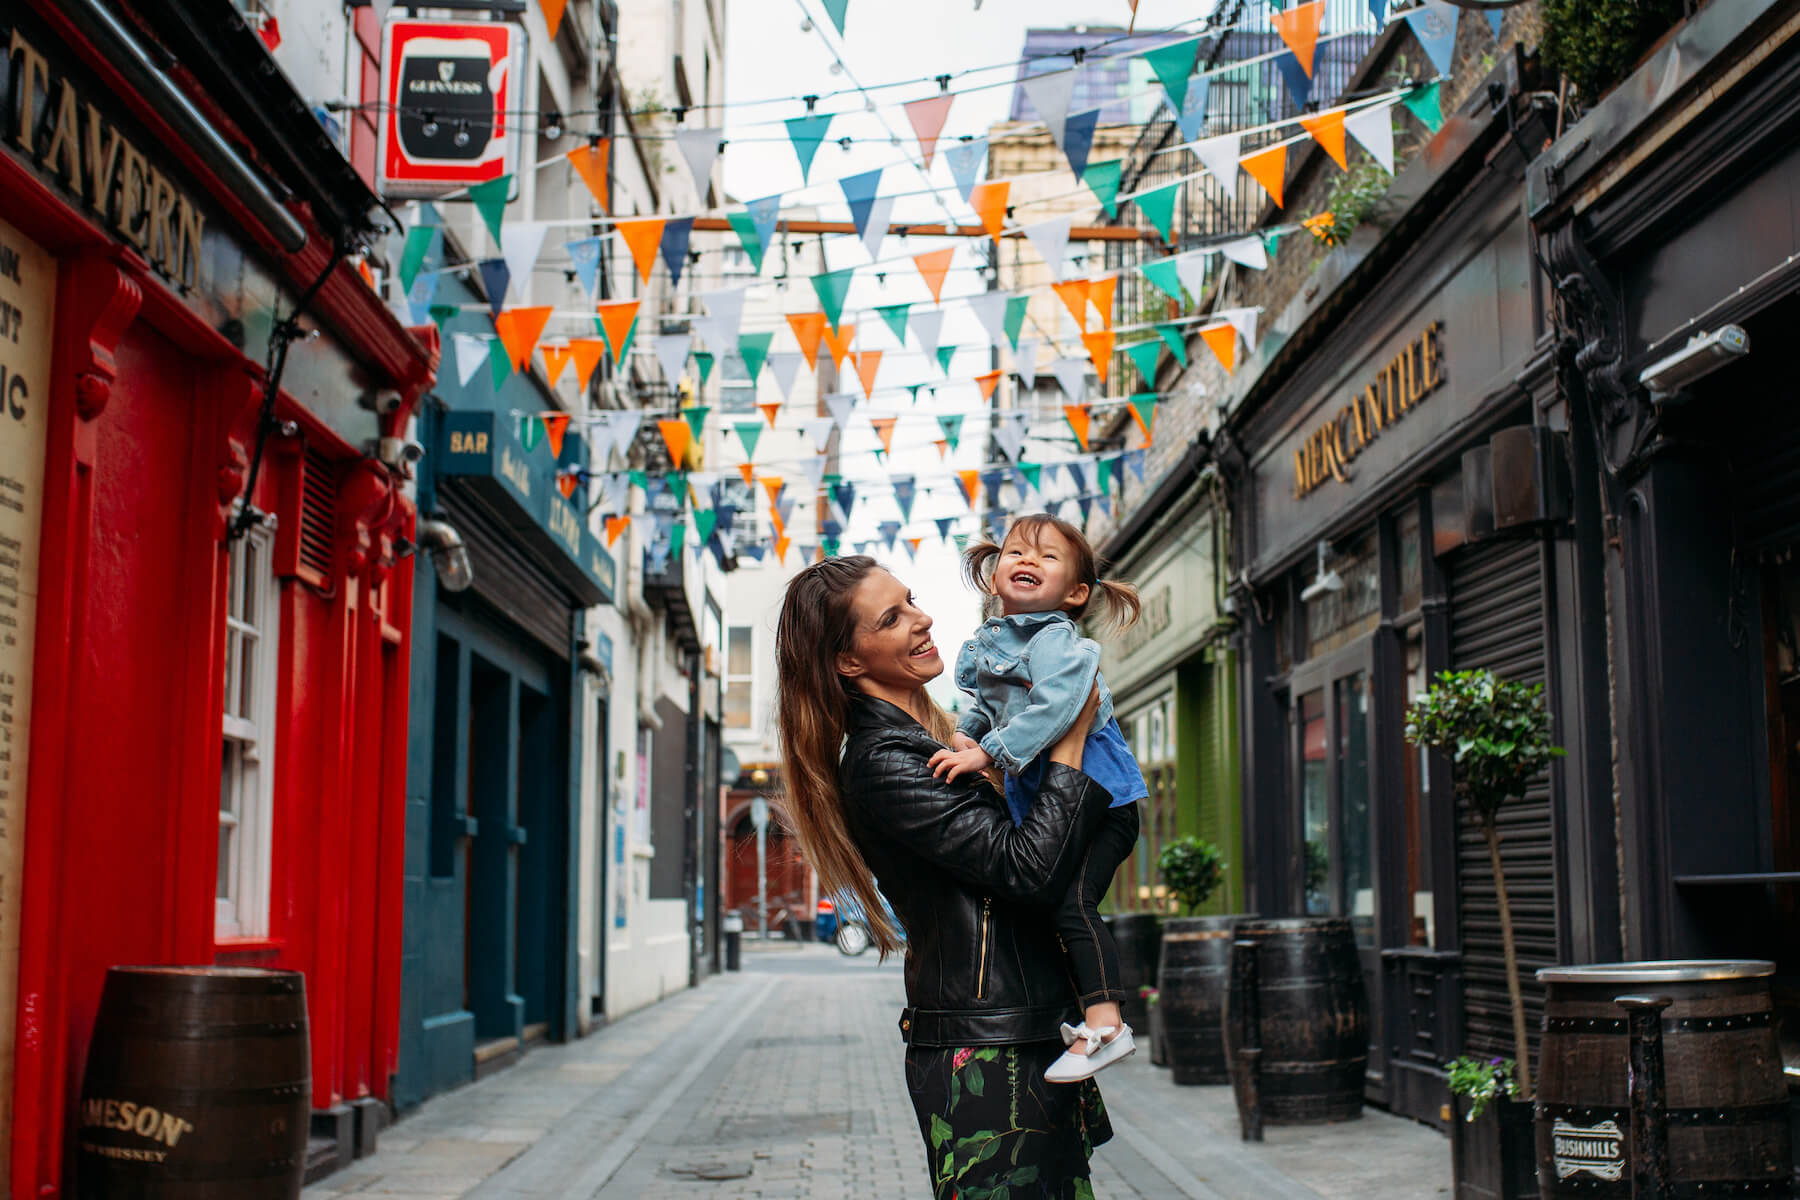 a mother and daughter standing on a colorful street in Dublin, Ireland